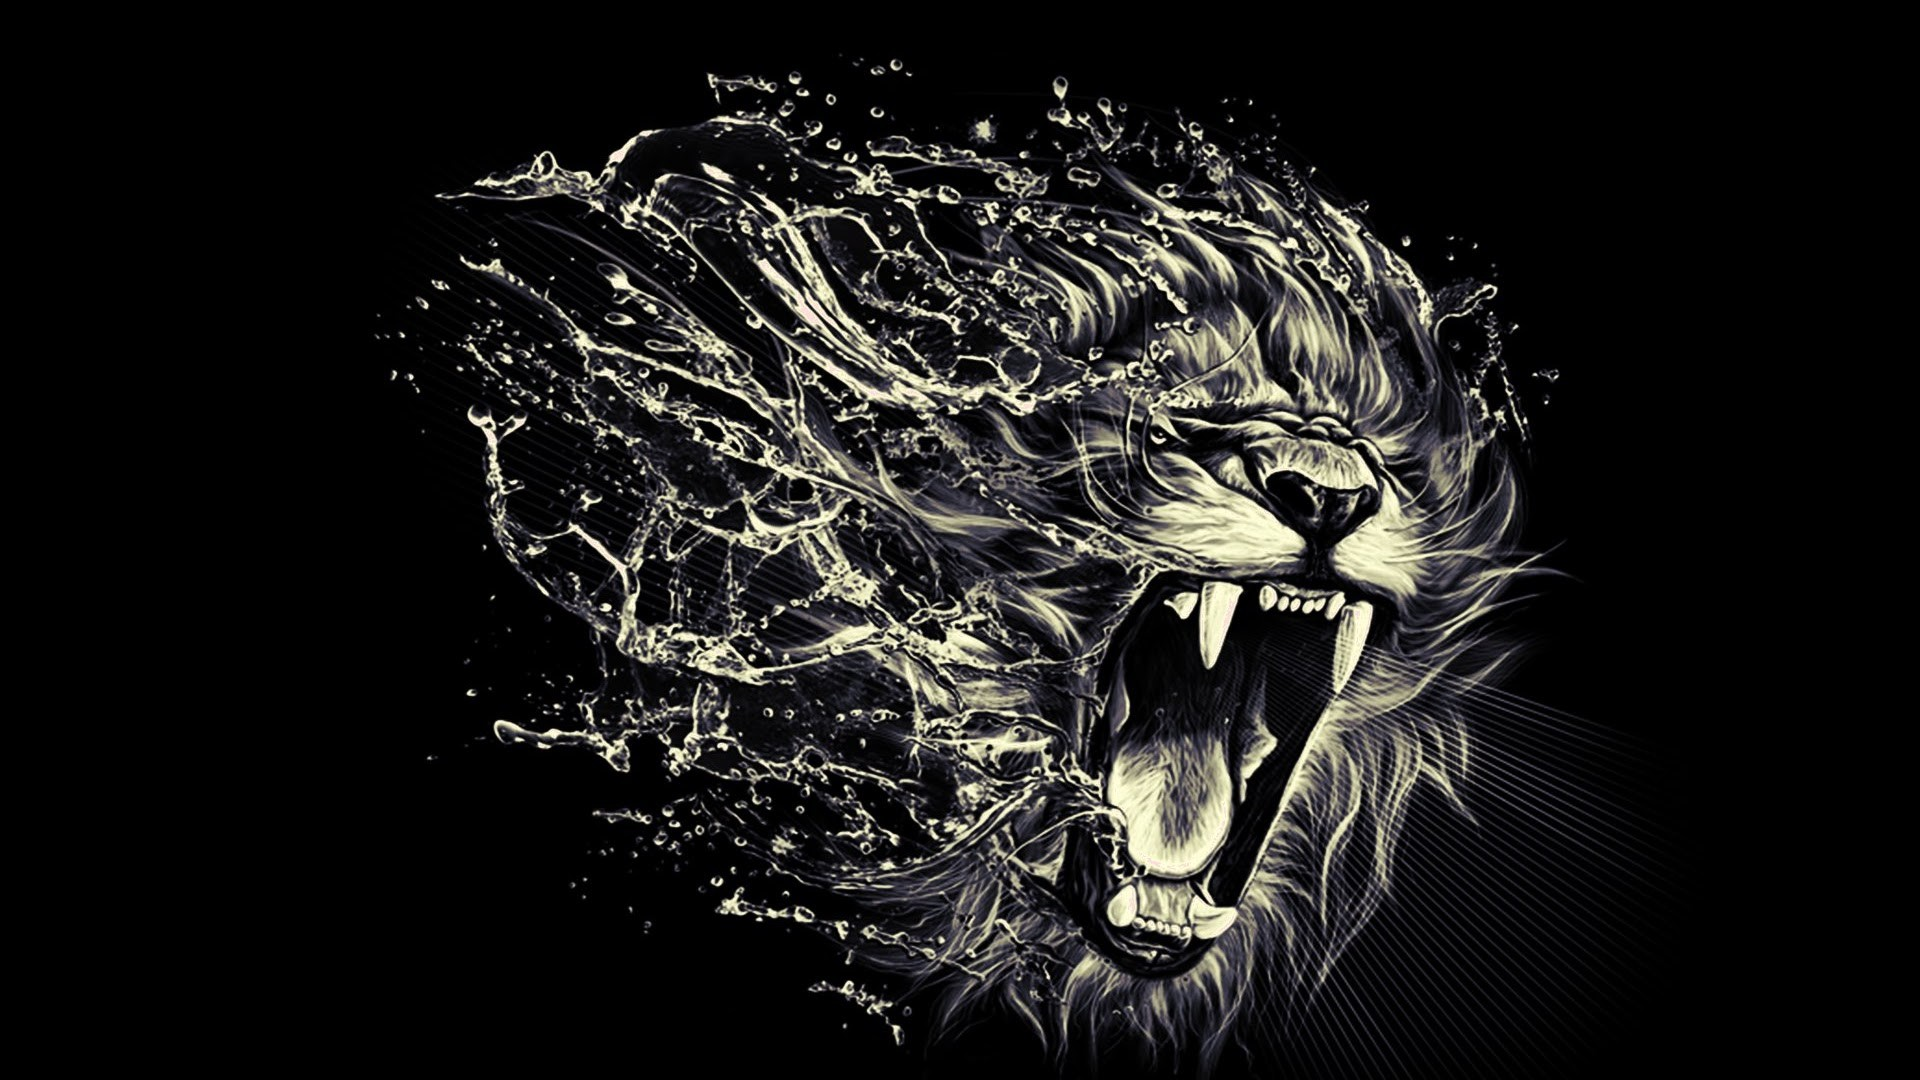 Roaring Lion Wallpaper 67 images 1920x1080